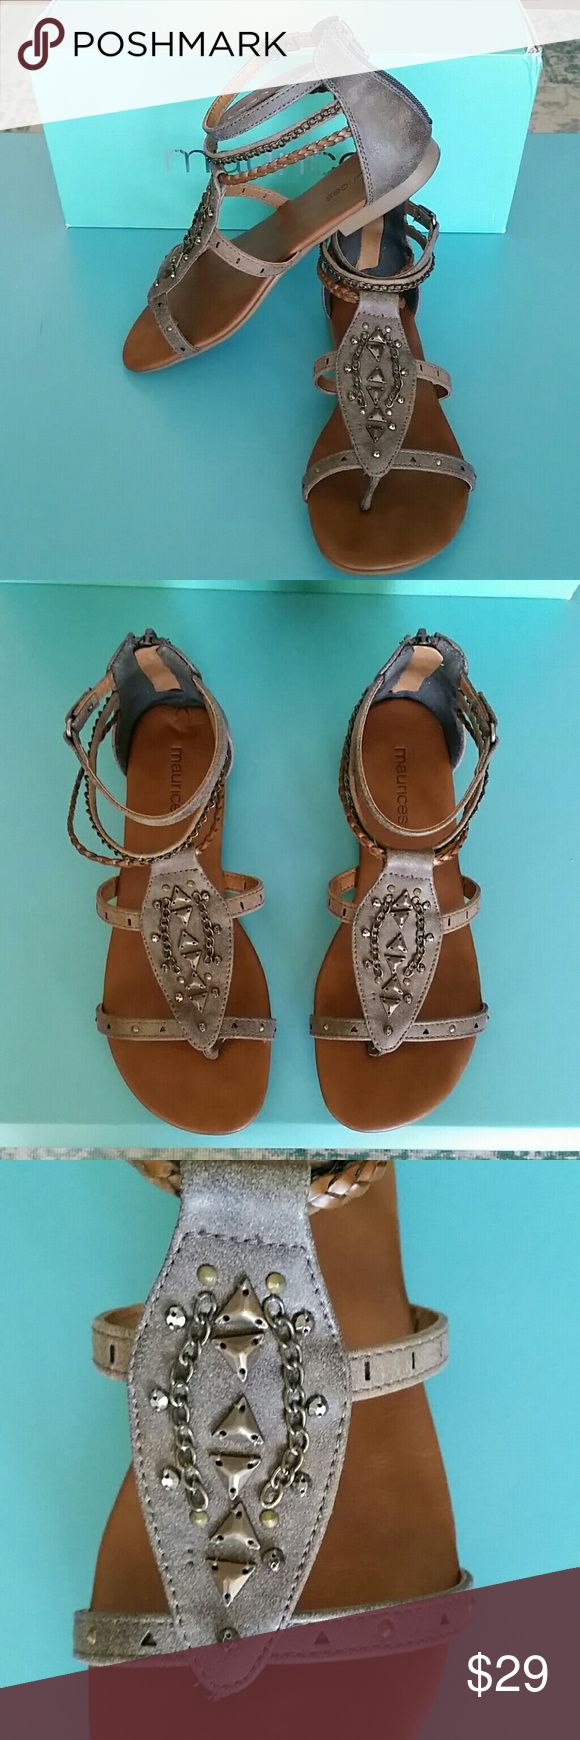 Super Cute Embellished Strappy Sandals Super Cute Embellished Strappy Sandals. Perfect colors of gray & brown to match almost any summer outfit. Stylish and very comfortable. Like new with box. Maurices  Shoes Sandals